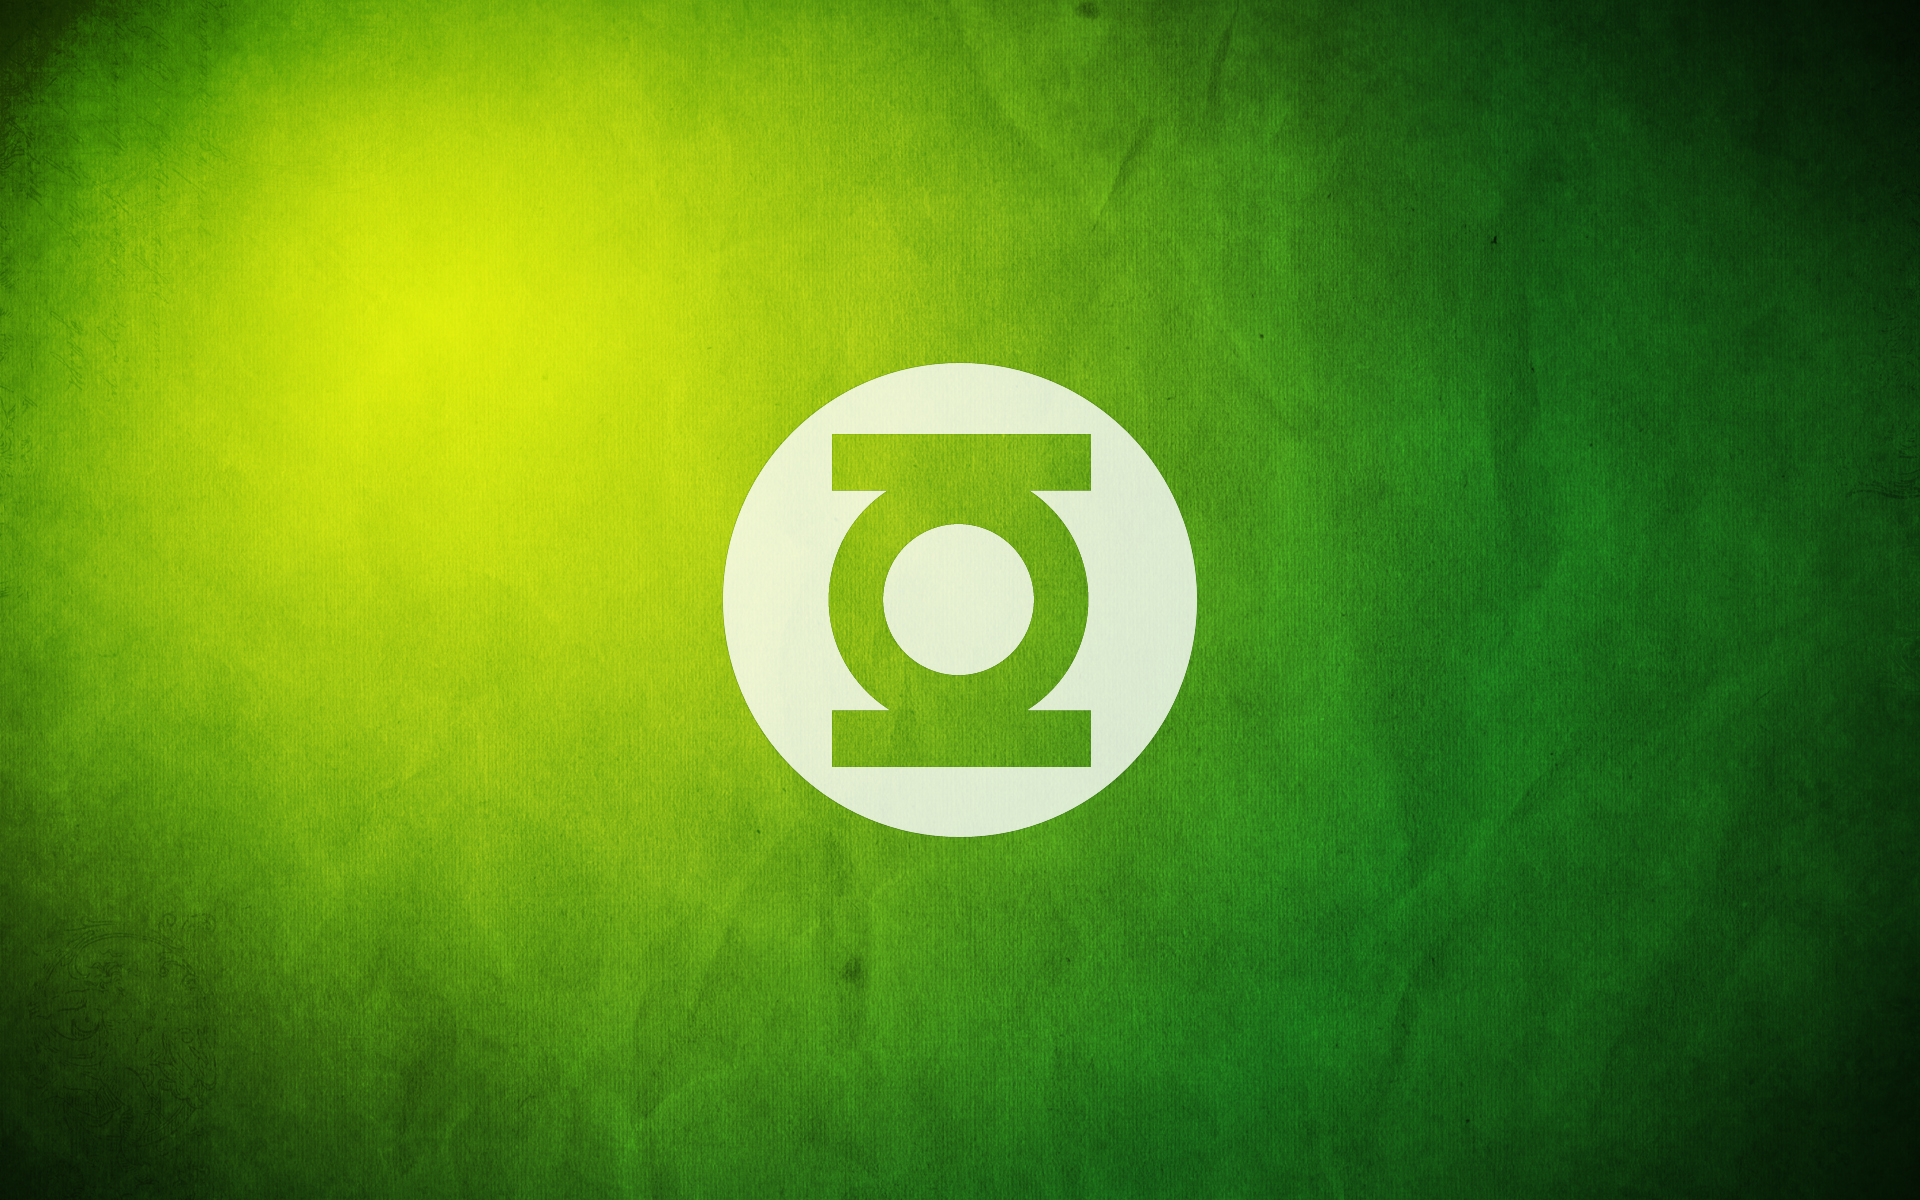 Check this out our new Green Lantern wallpaper DC Comics wallpapers 1920x1200